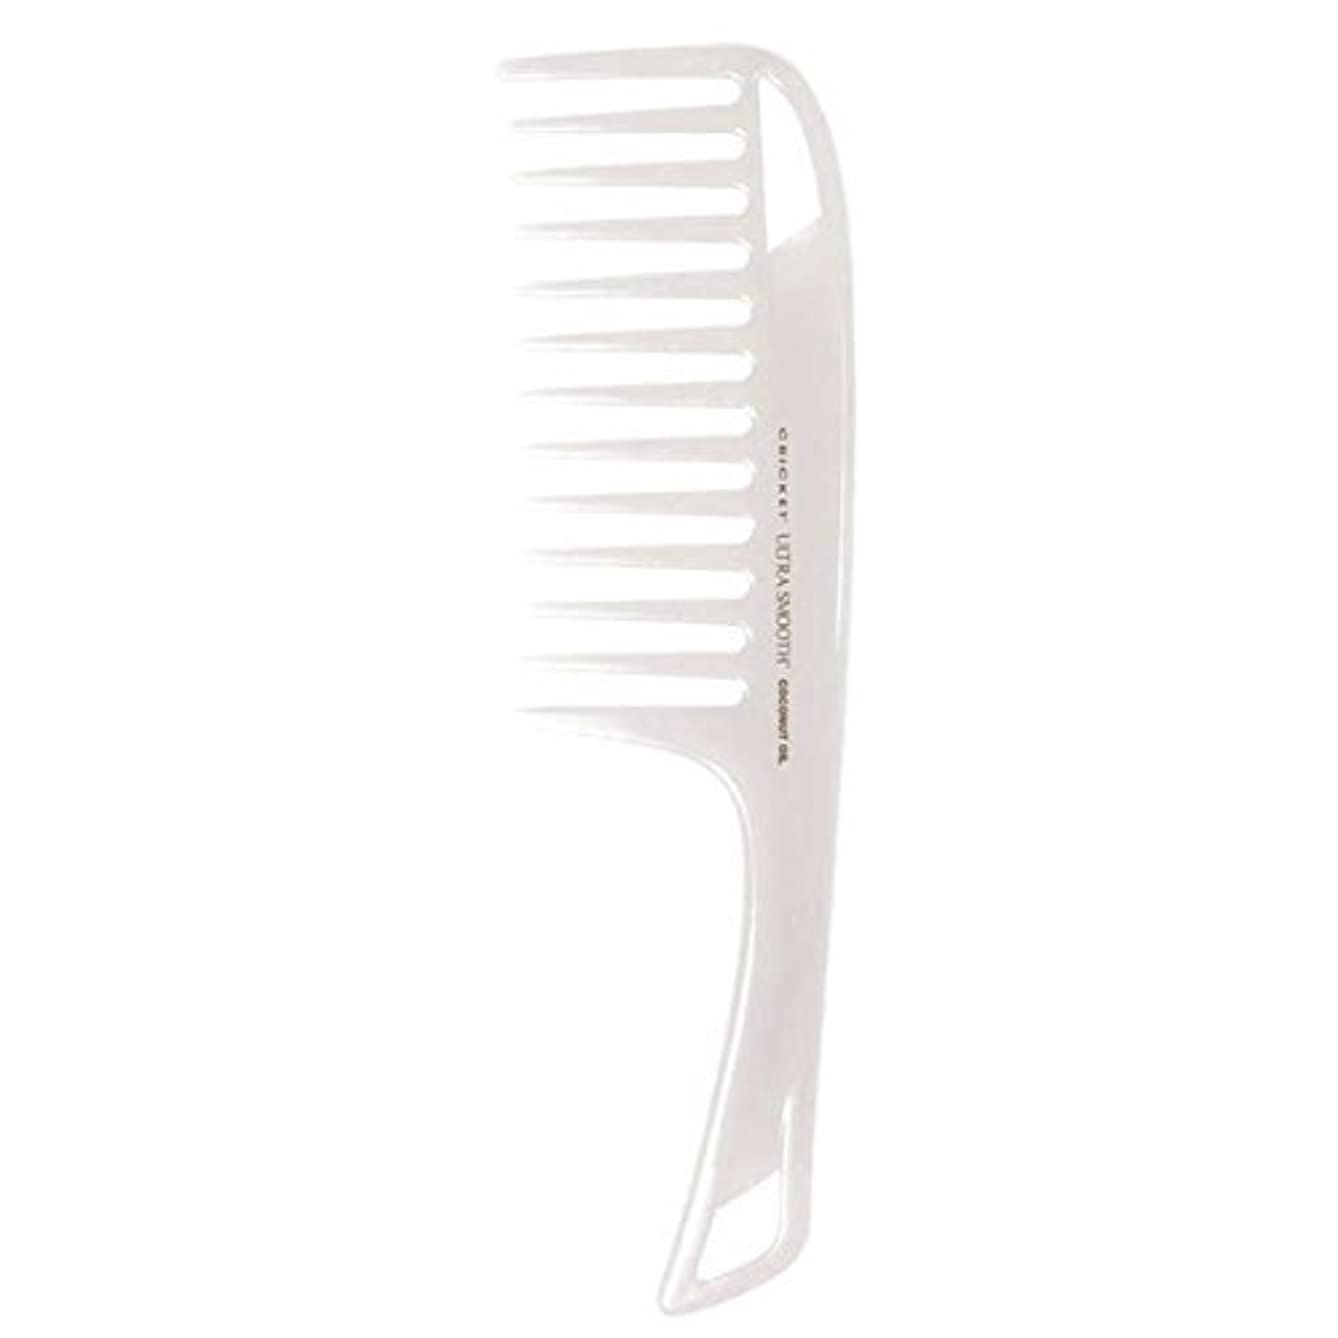 悲しむ接続ドラムCricket Ultra Smooth Coconut Detangler Comb [並行輸入品]